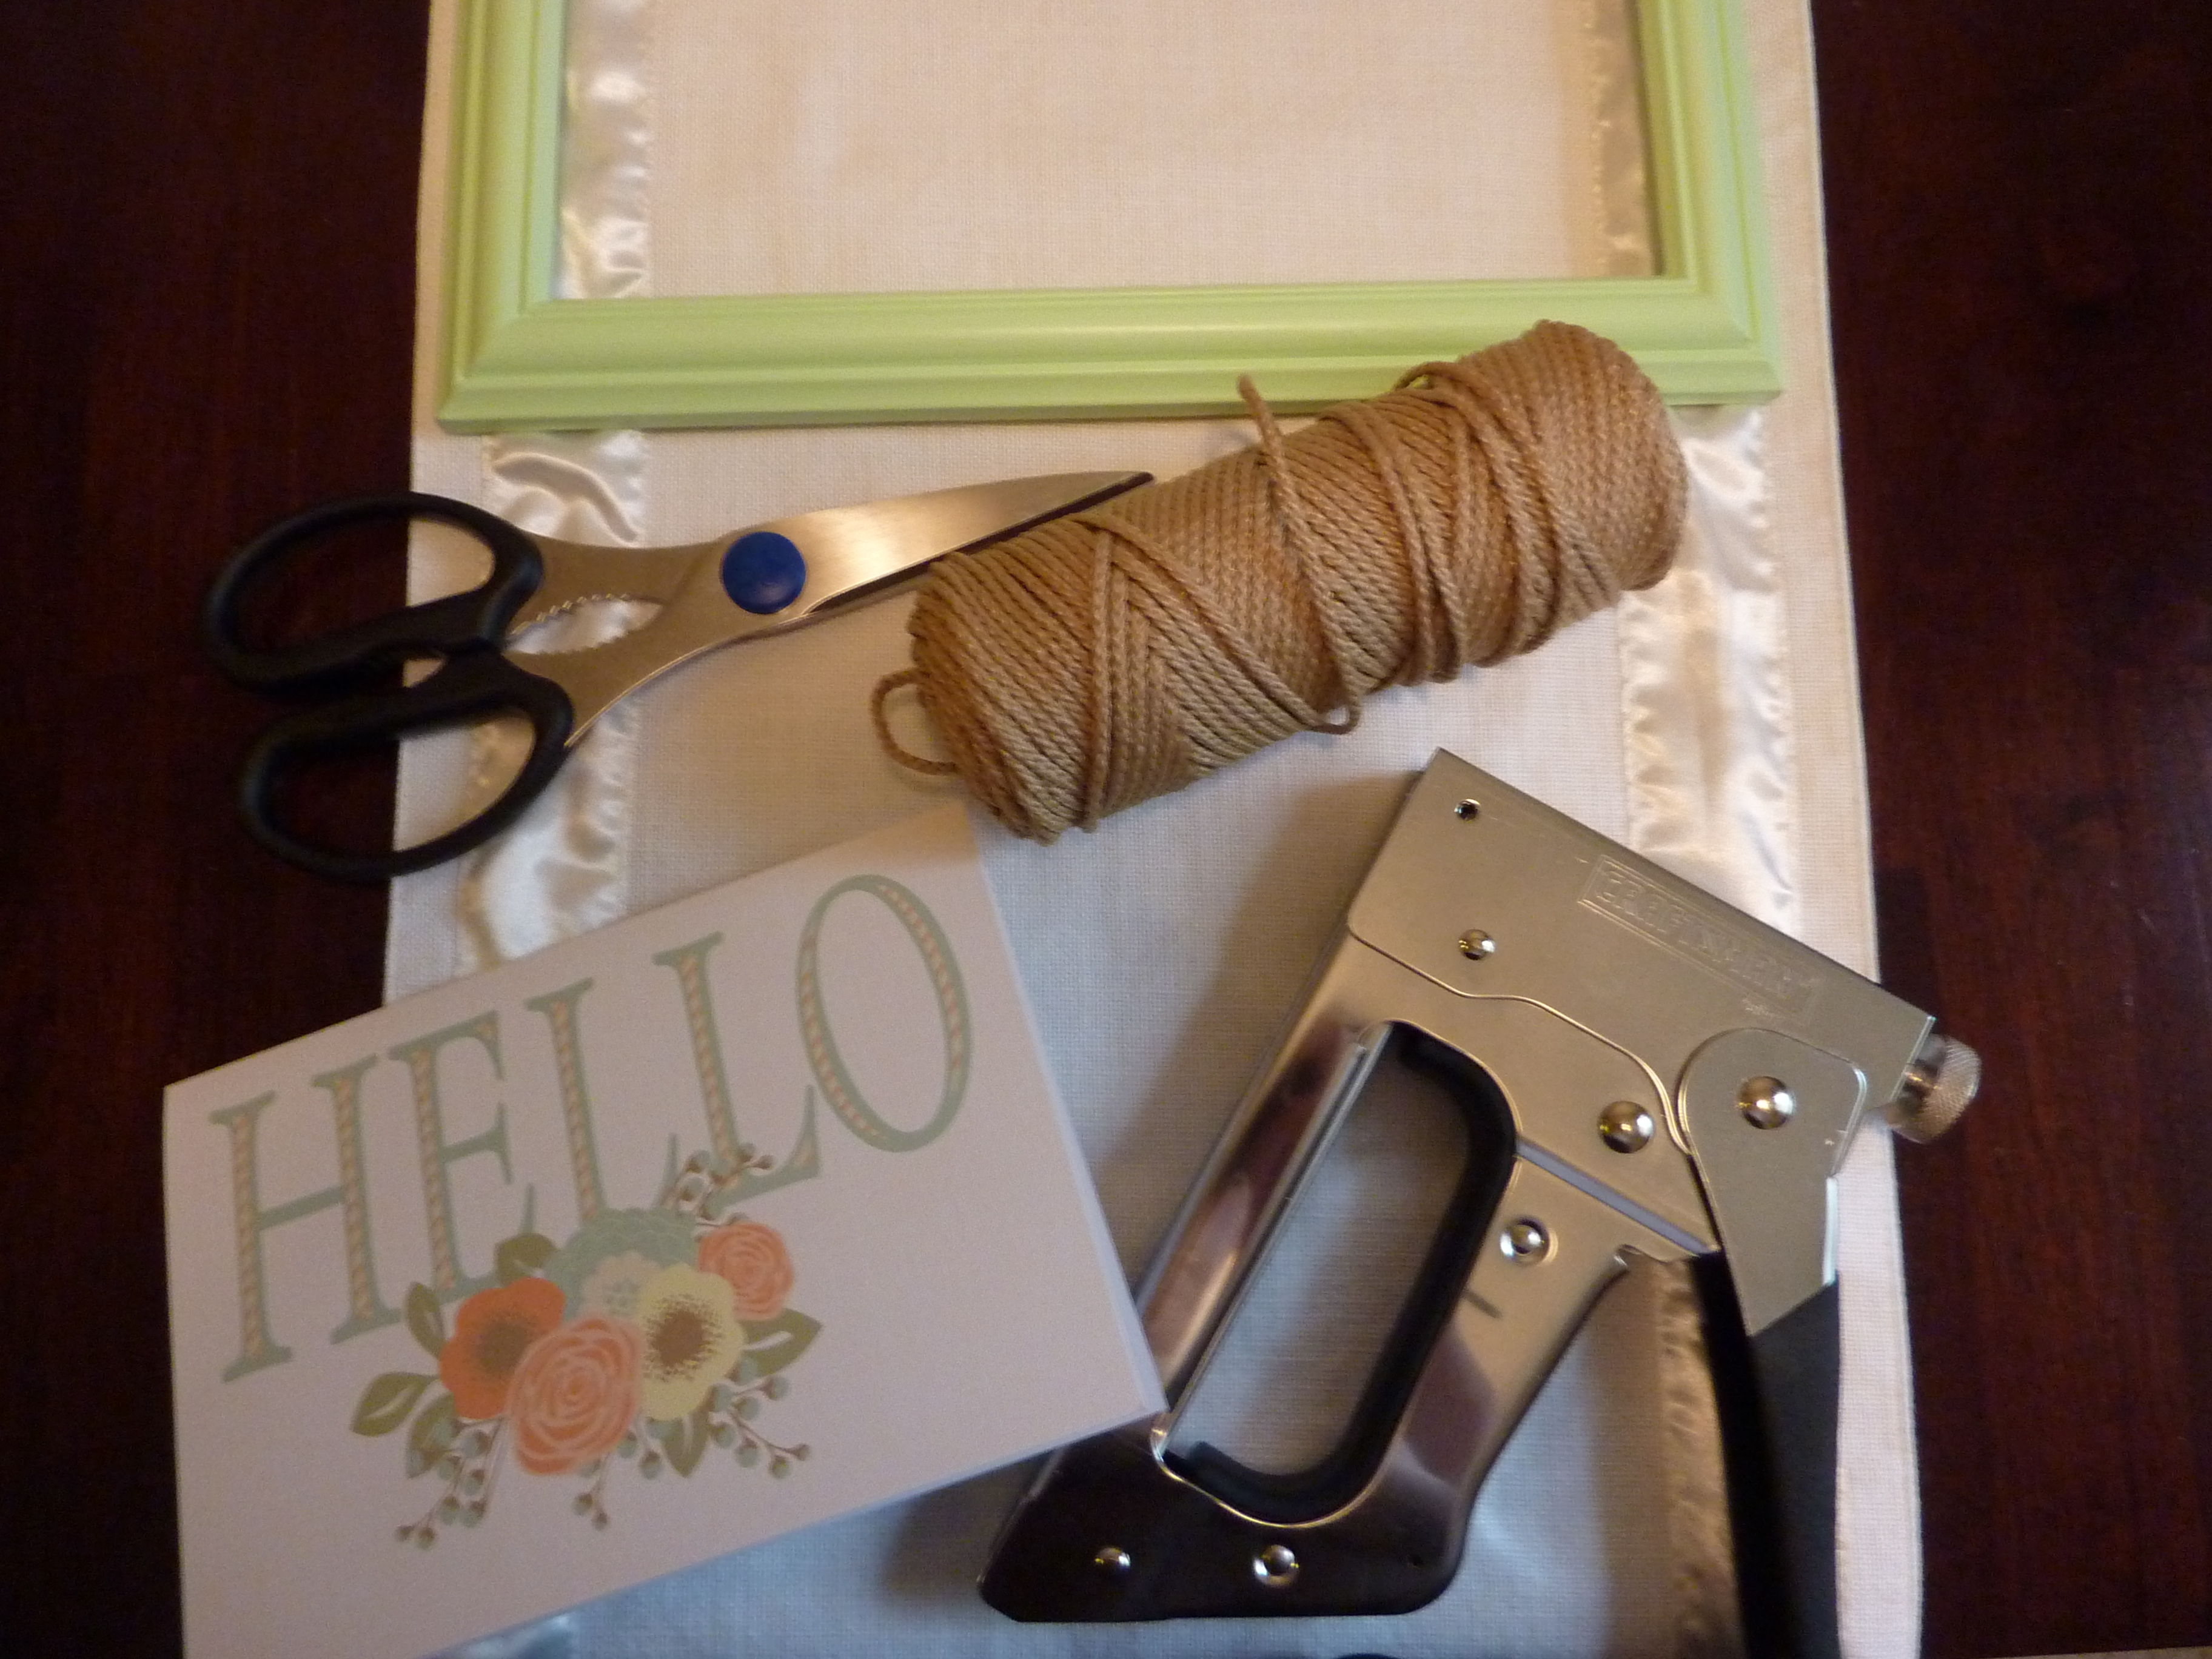 Hang a card in a frame.